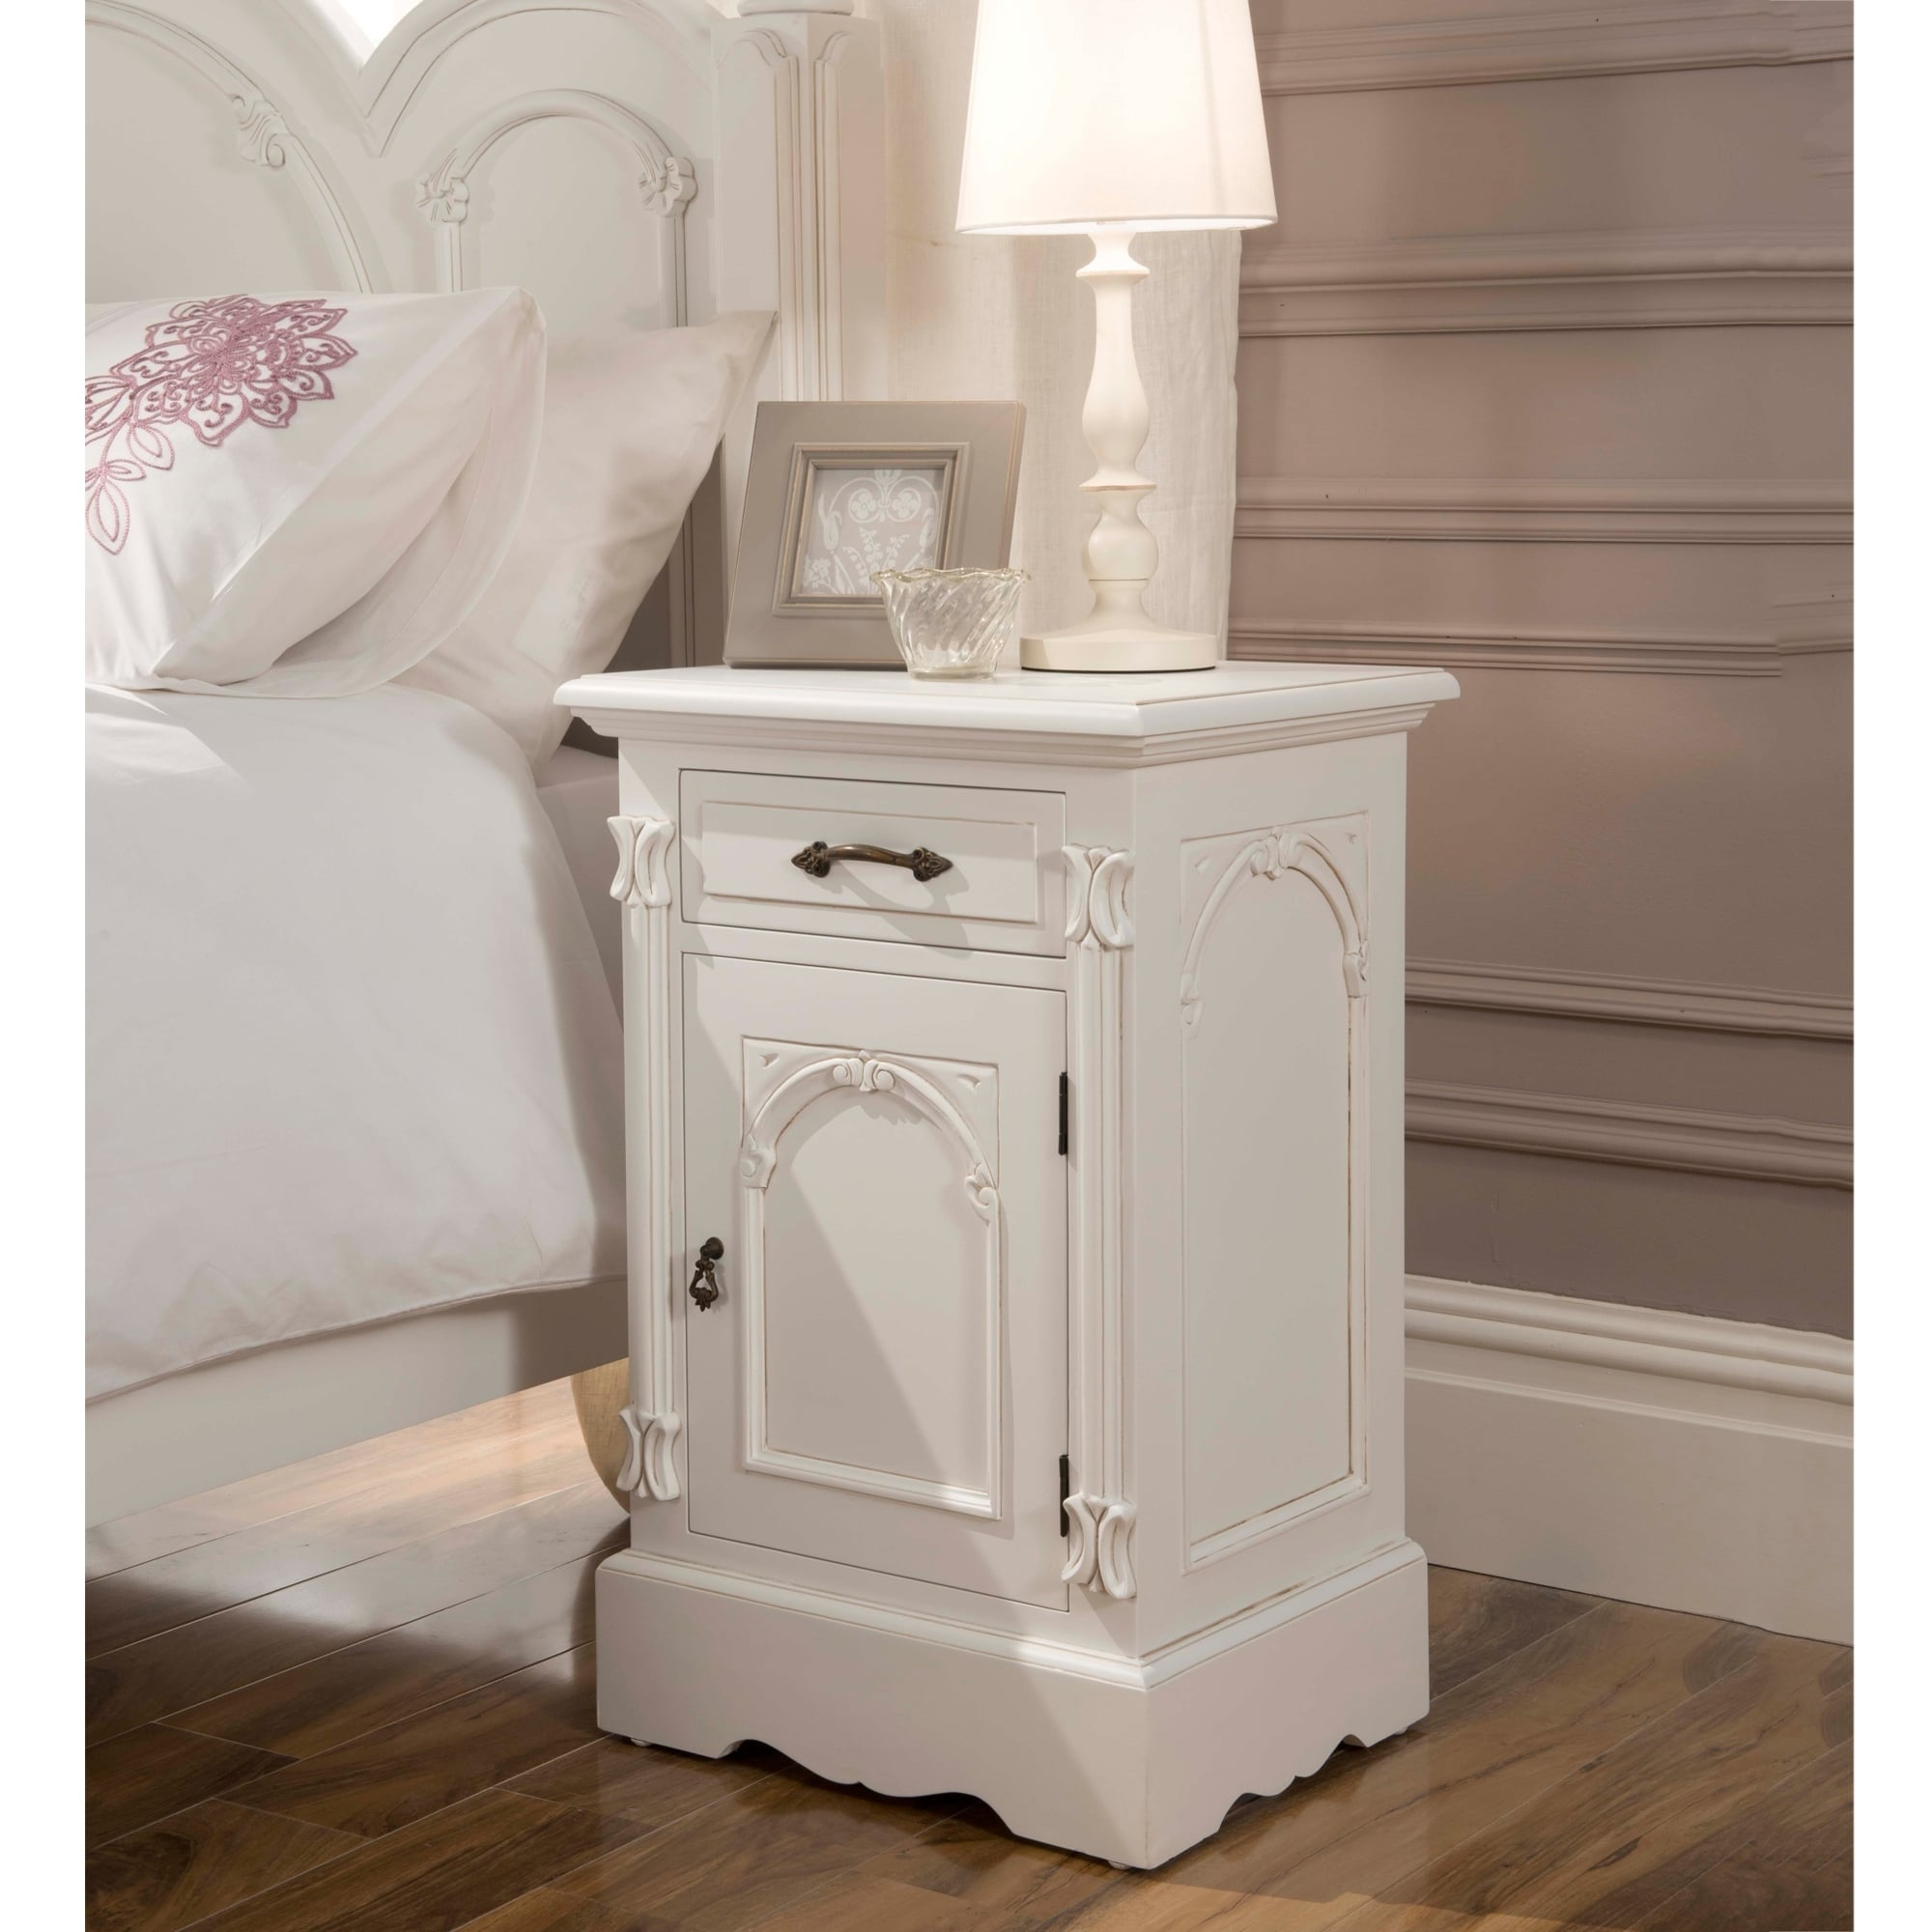 Picture of: Victorian Antique French Bedside French Furniture From Homesdirect 365 Uk